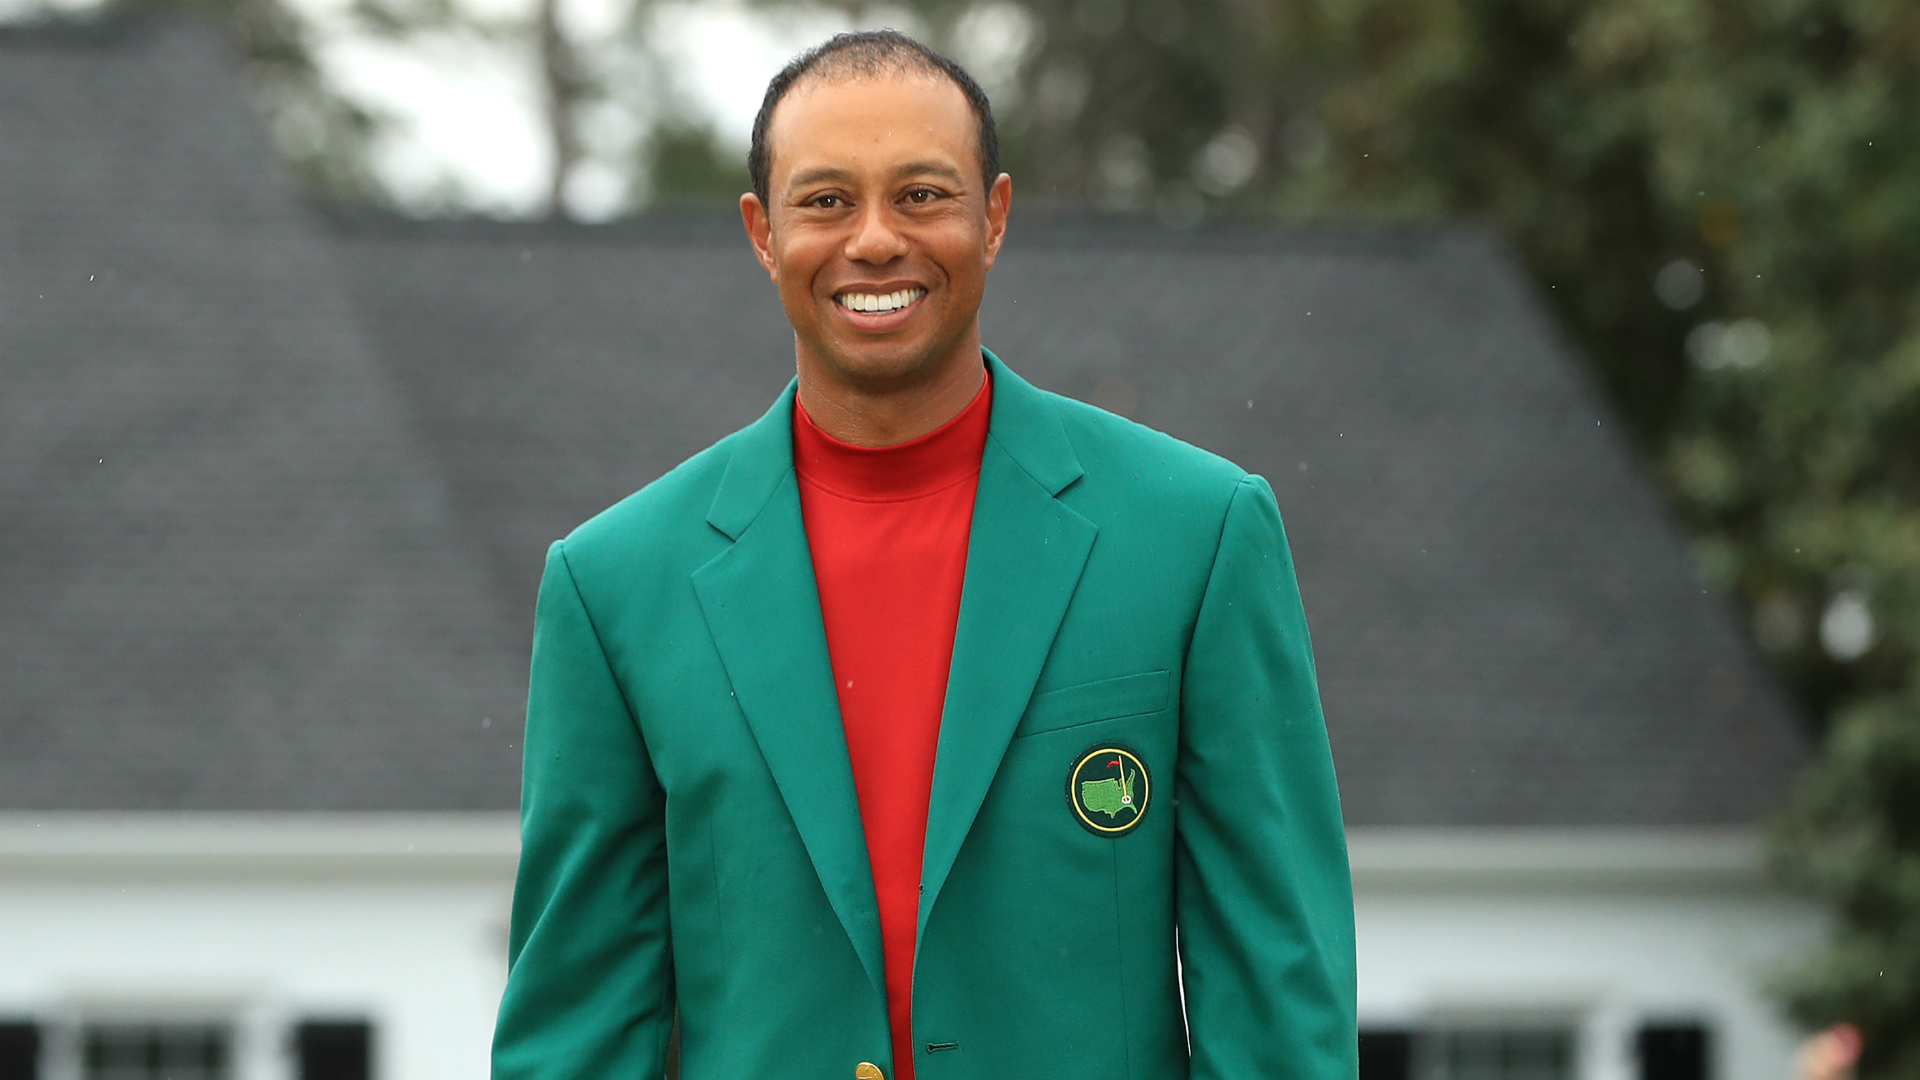 Woods' Masters win hailed as 'greatest comeback' by Jordan